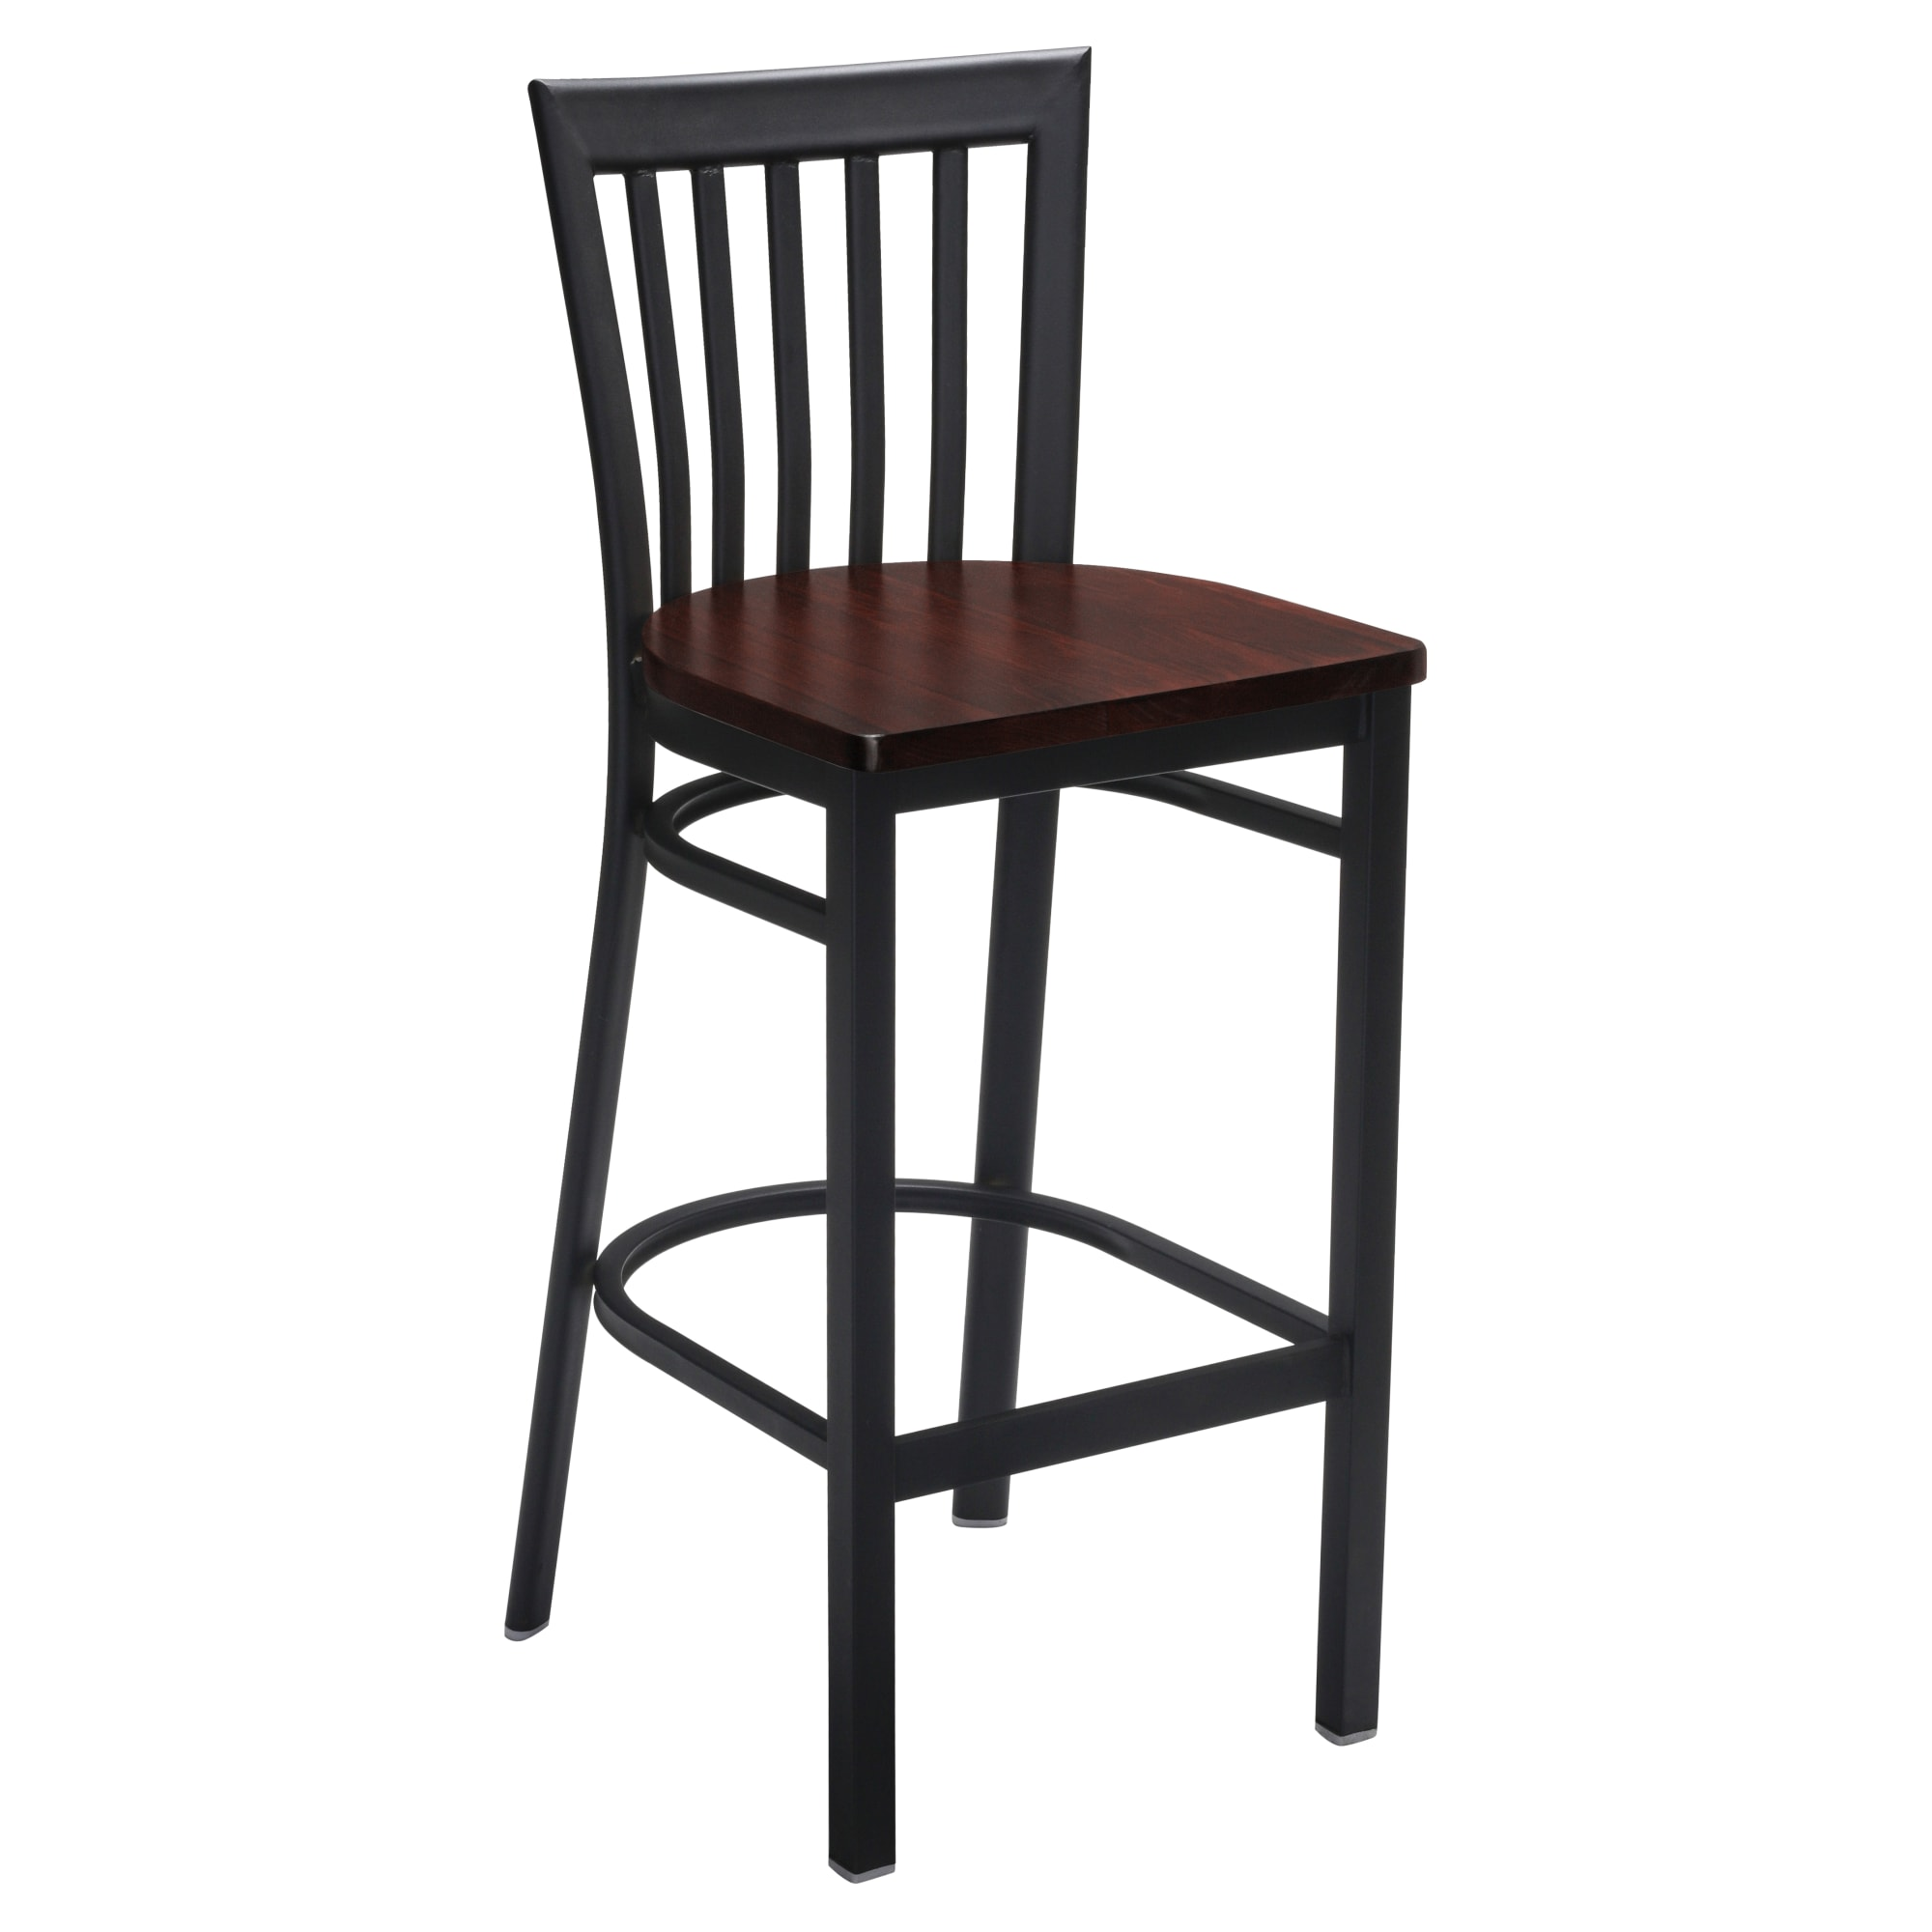 Elongated Vertical Back Metal Bar Stool with Elongated Vertical Back Metal Bar Stool